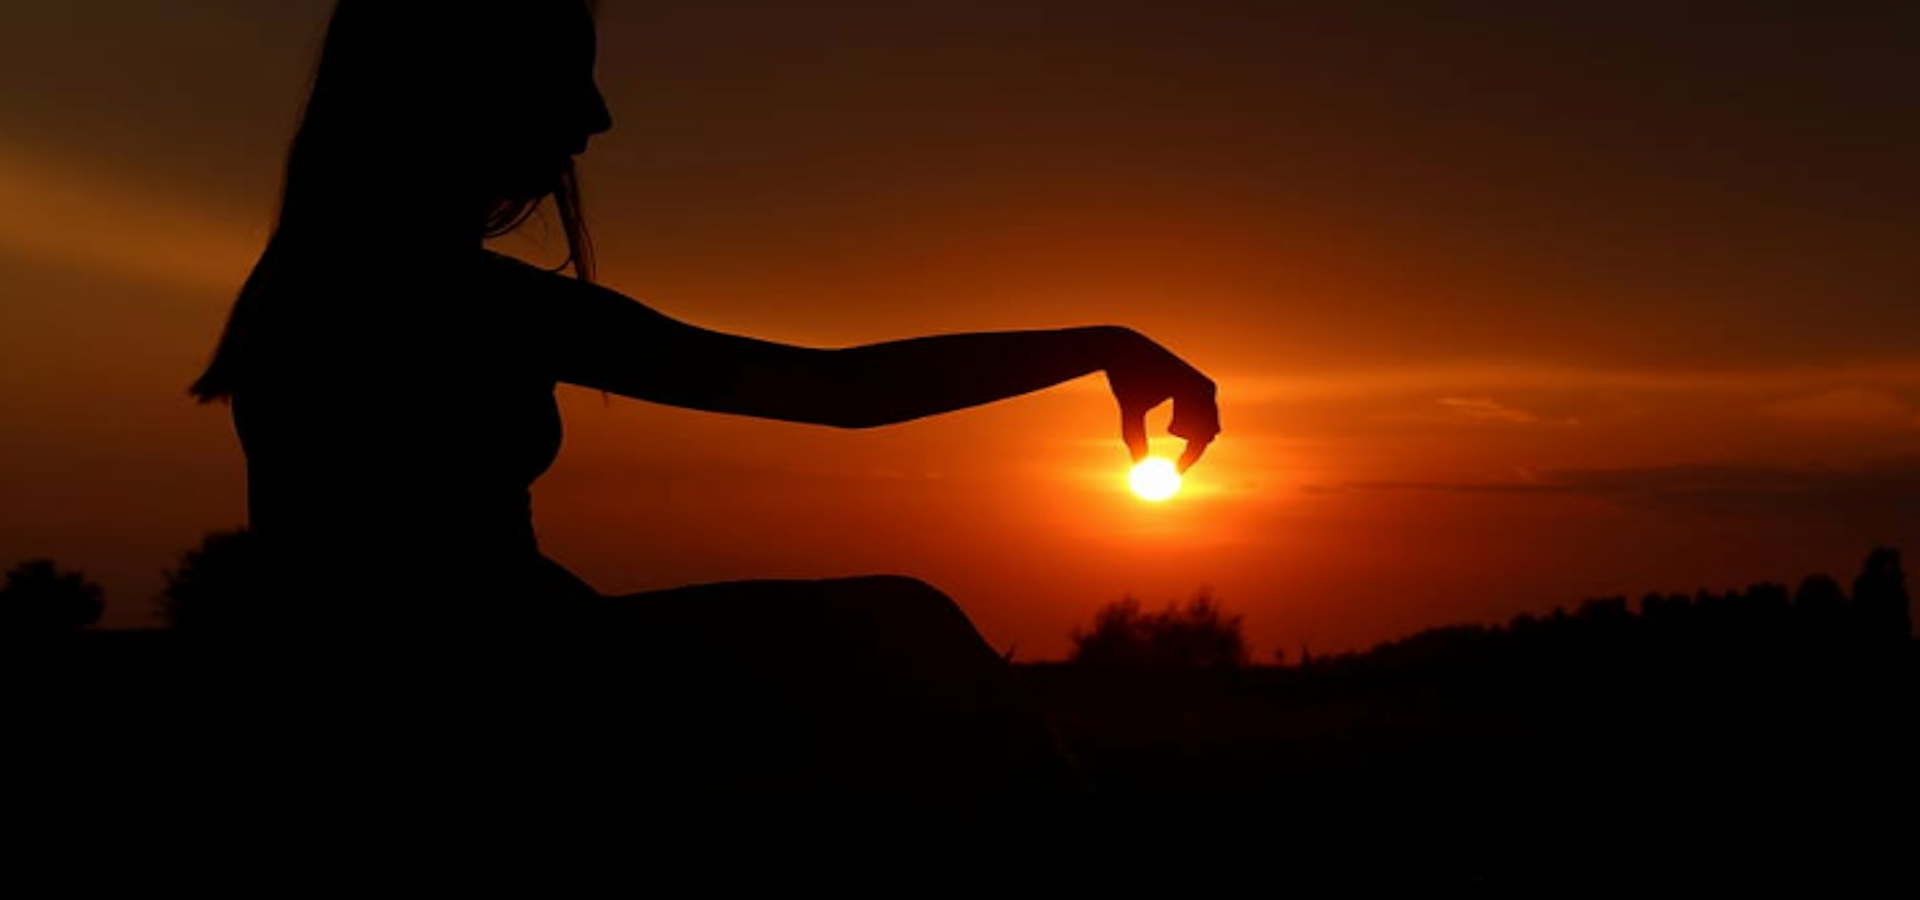 silhouette of woman holding the sun with her fingers against a dark, orange sky